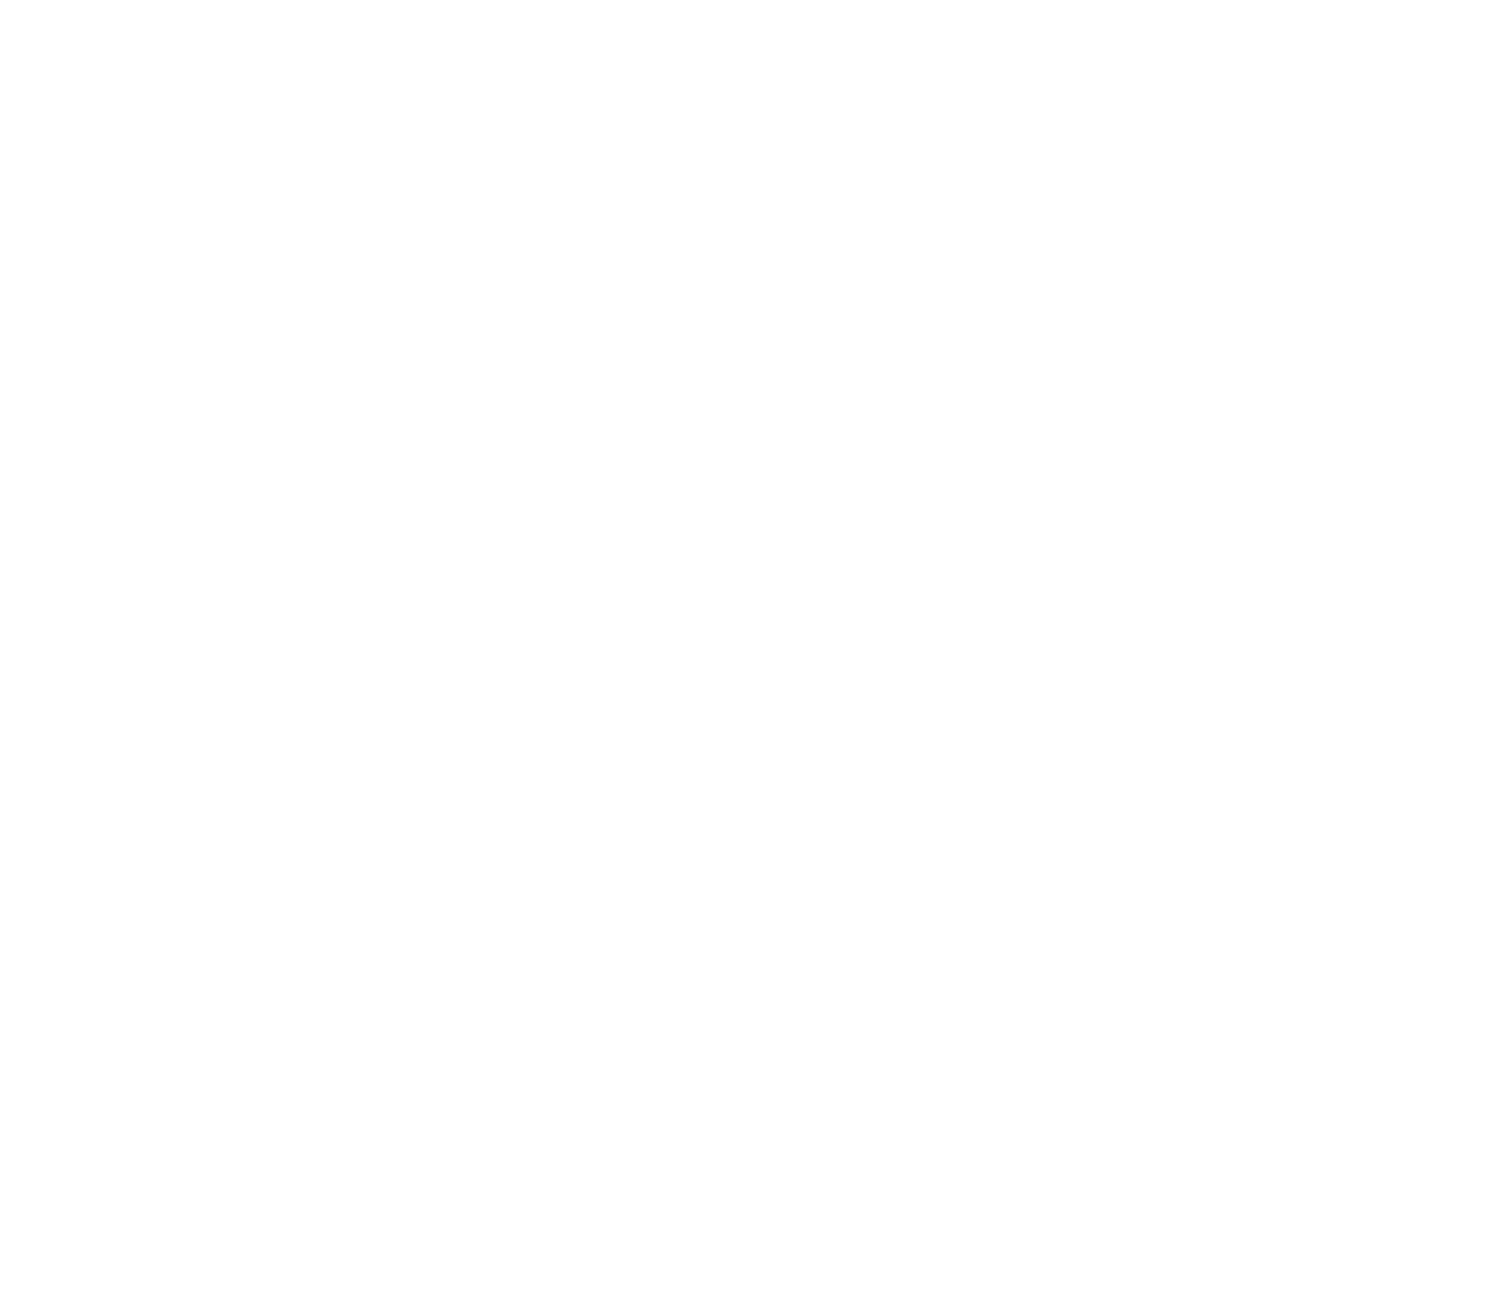 Gateway - University District